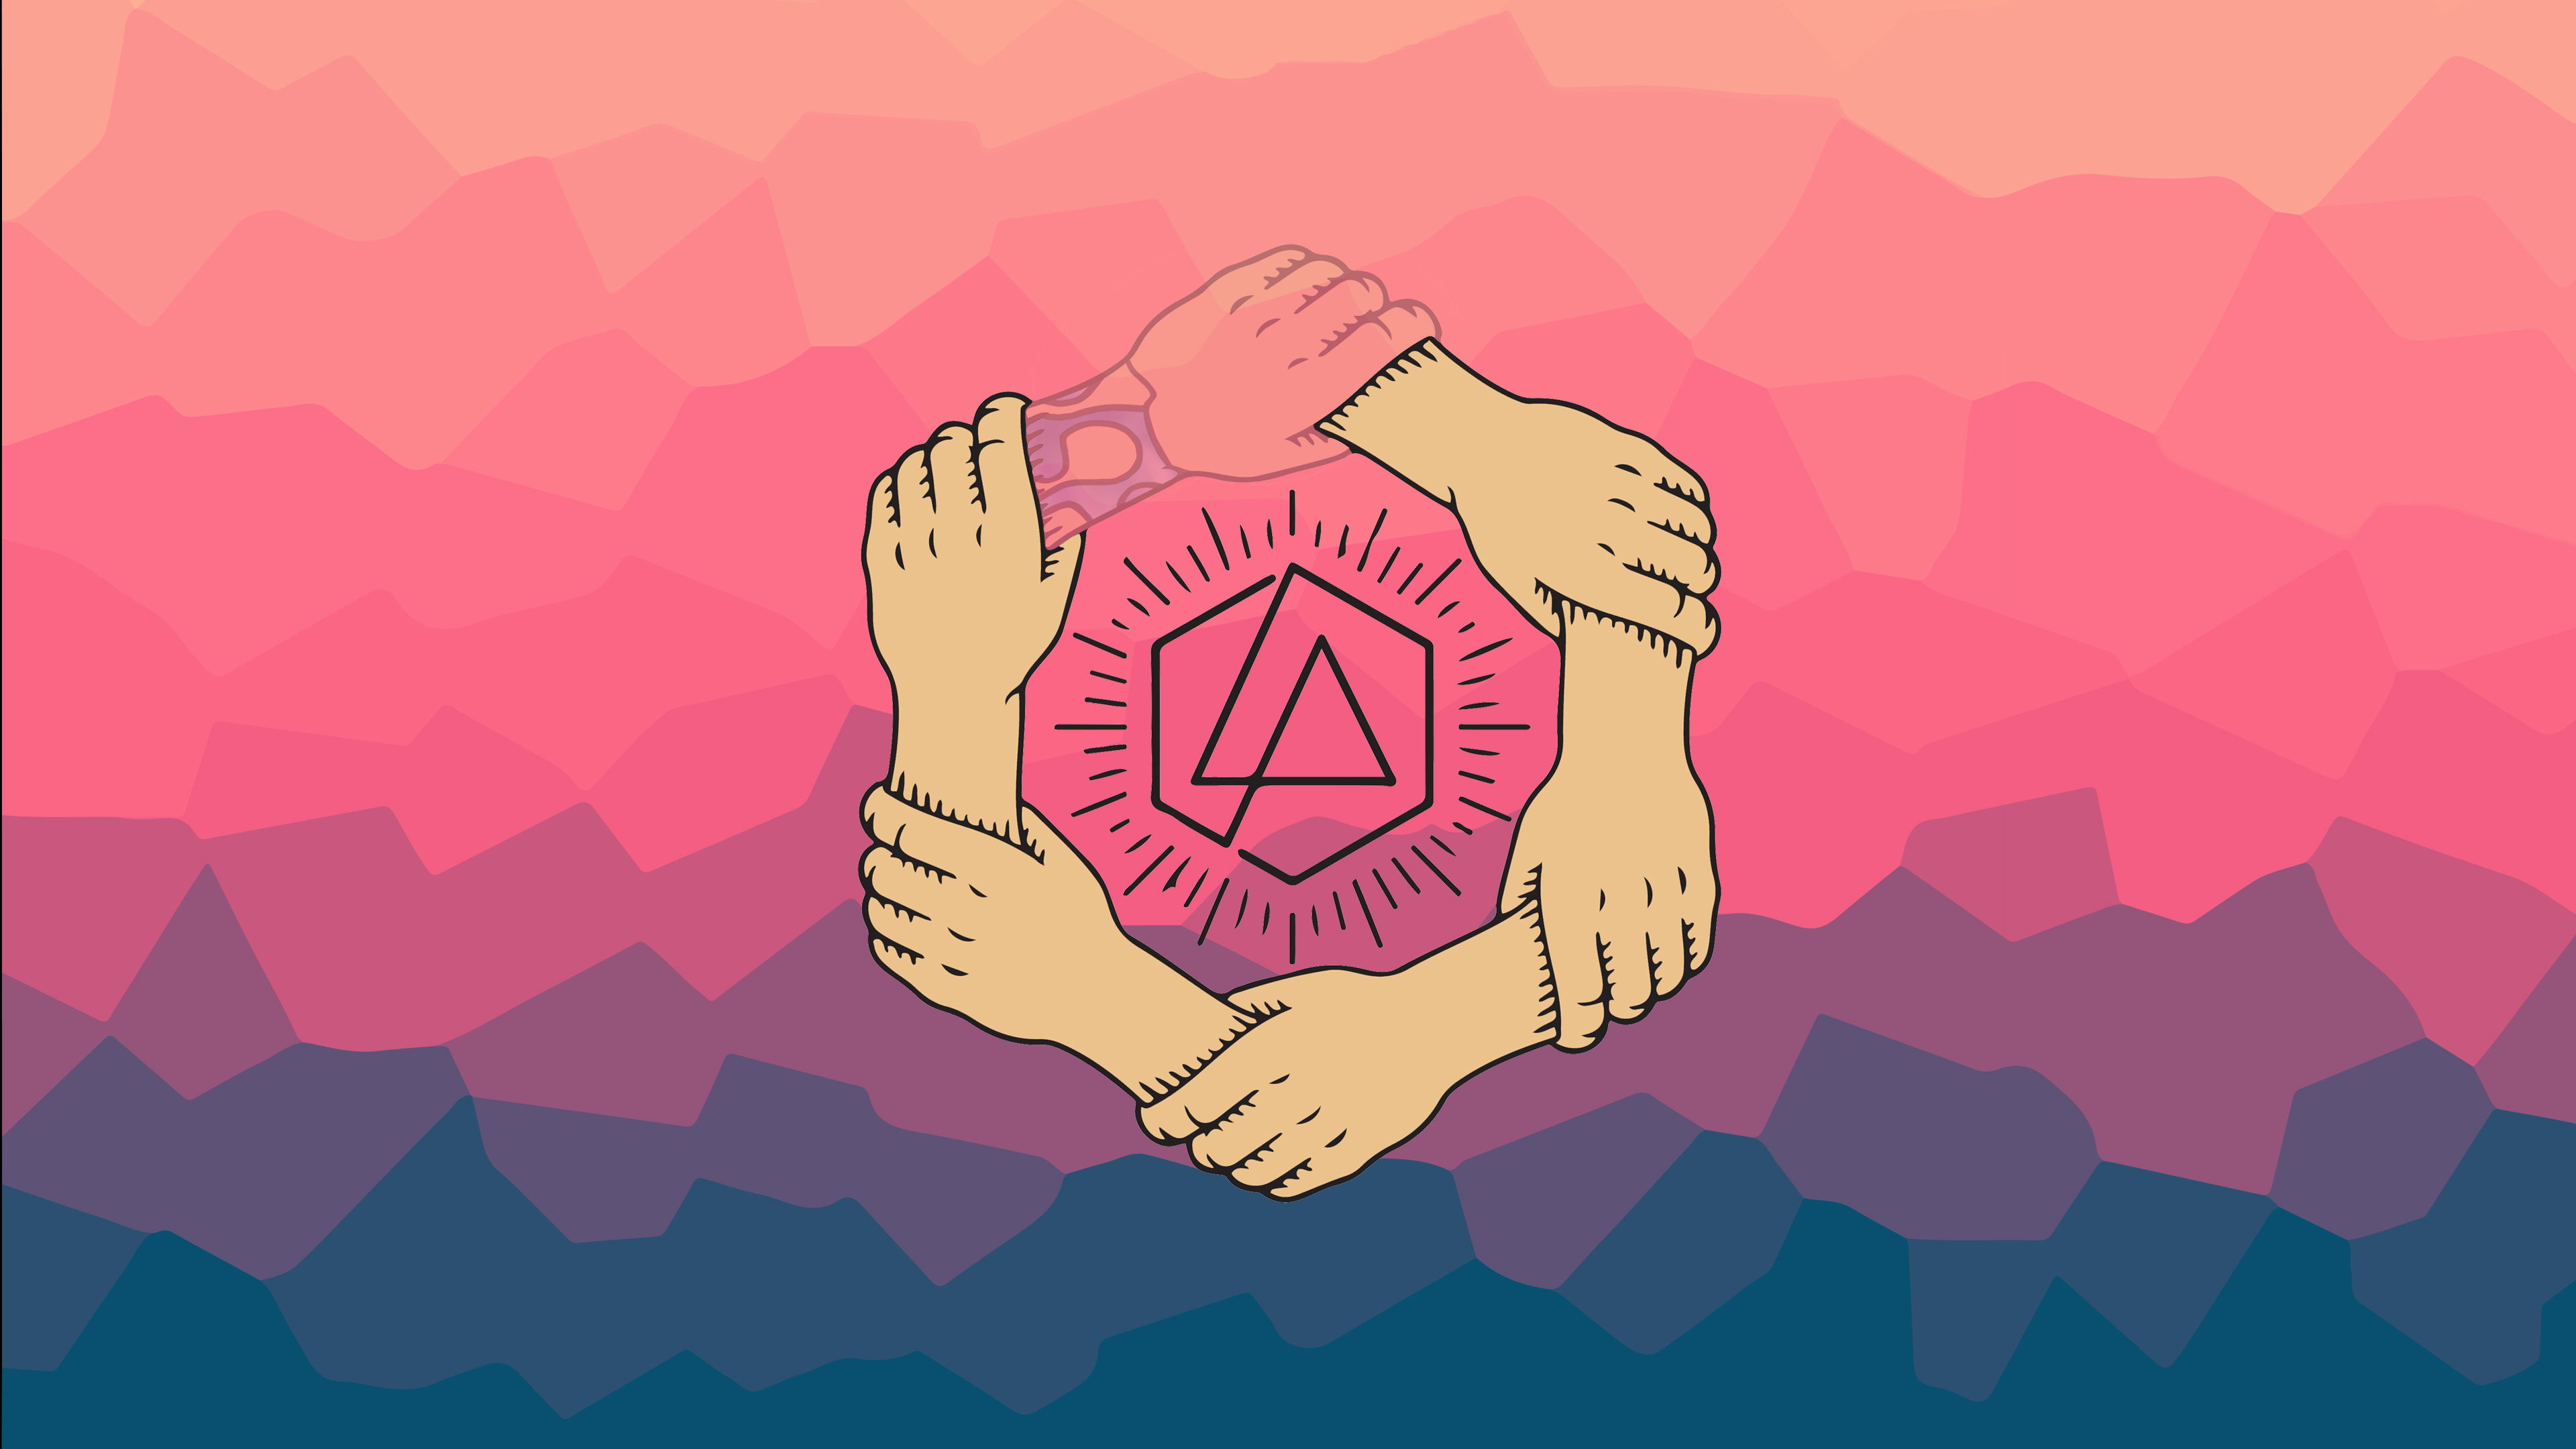 Linkin Park Tribute Desktop And Phone Wallpaper   Linkin Park One 3840x2160